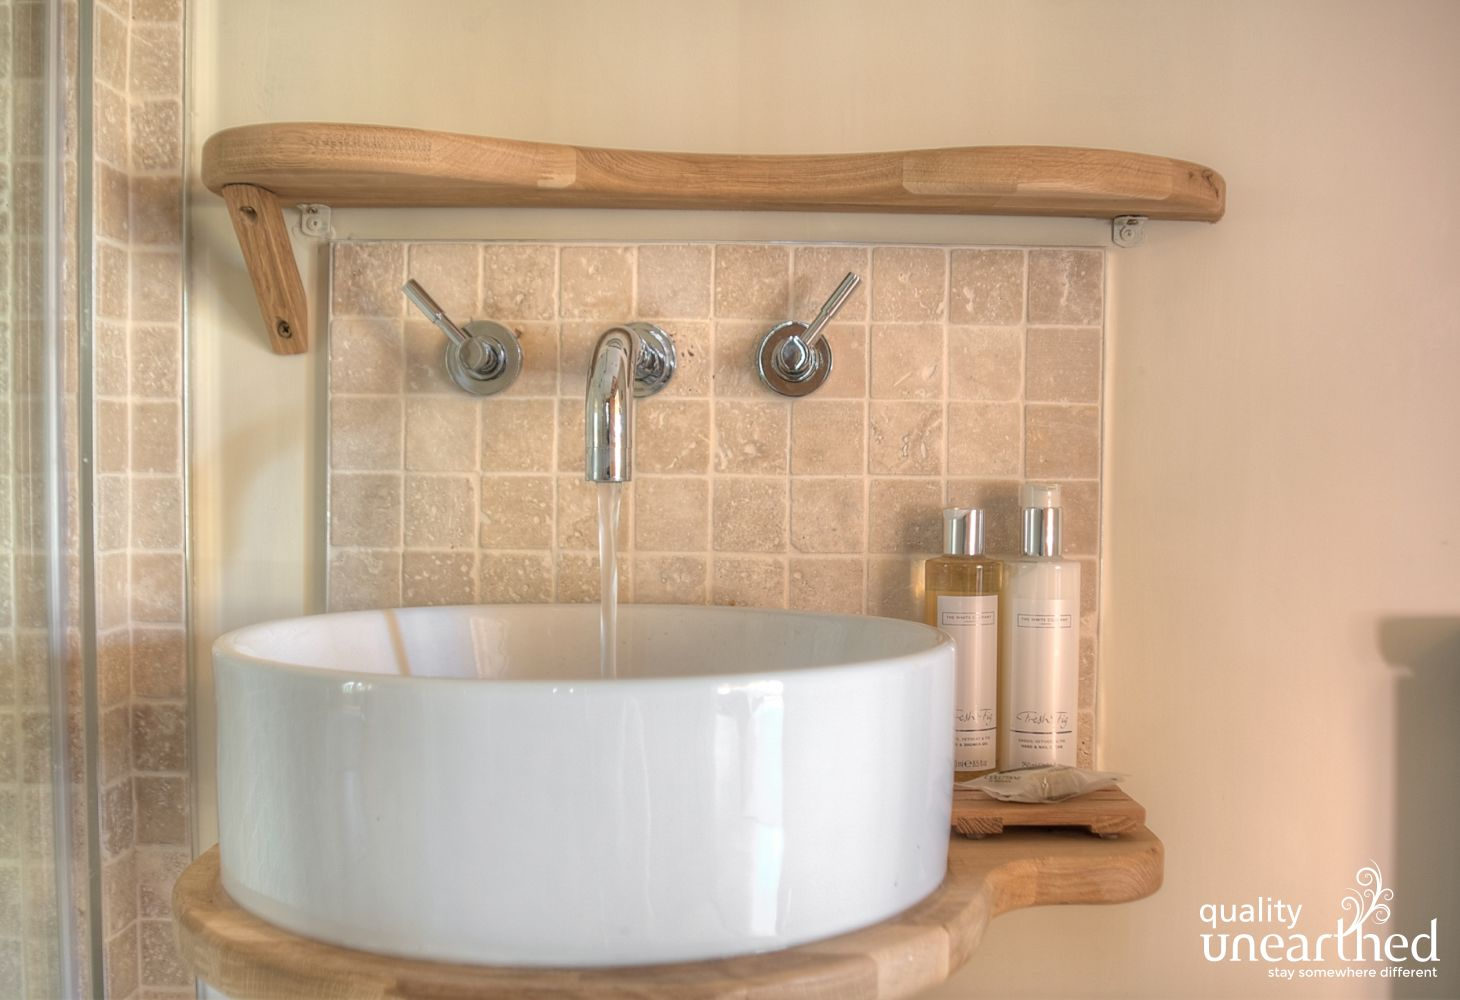 Round sink and toiletries showing a 5 star hotel like service at this treehouse